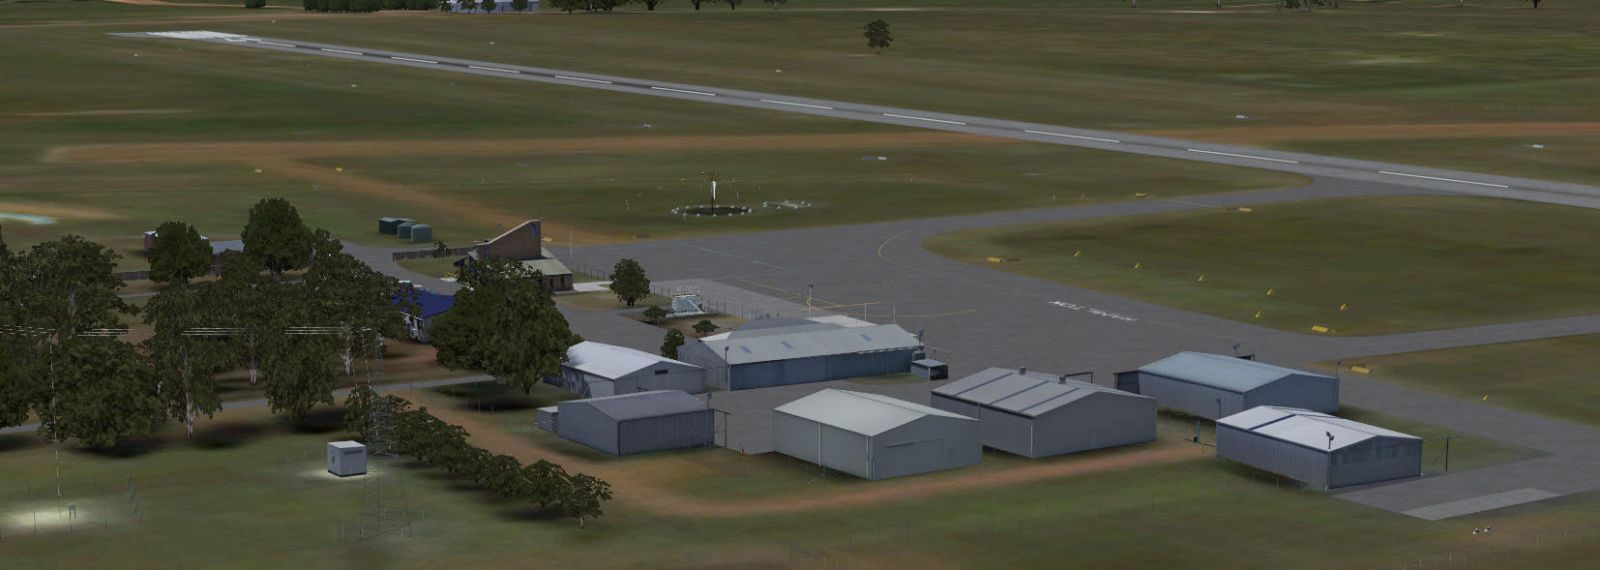 Ants Aussie Airports 13 Yhml Hamilton Scenery For Fsx